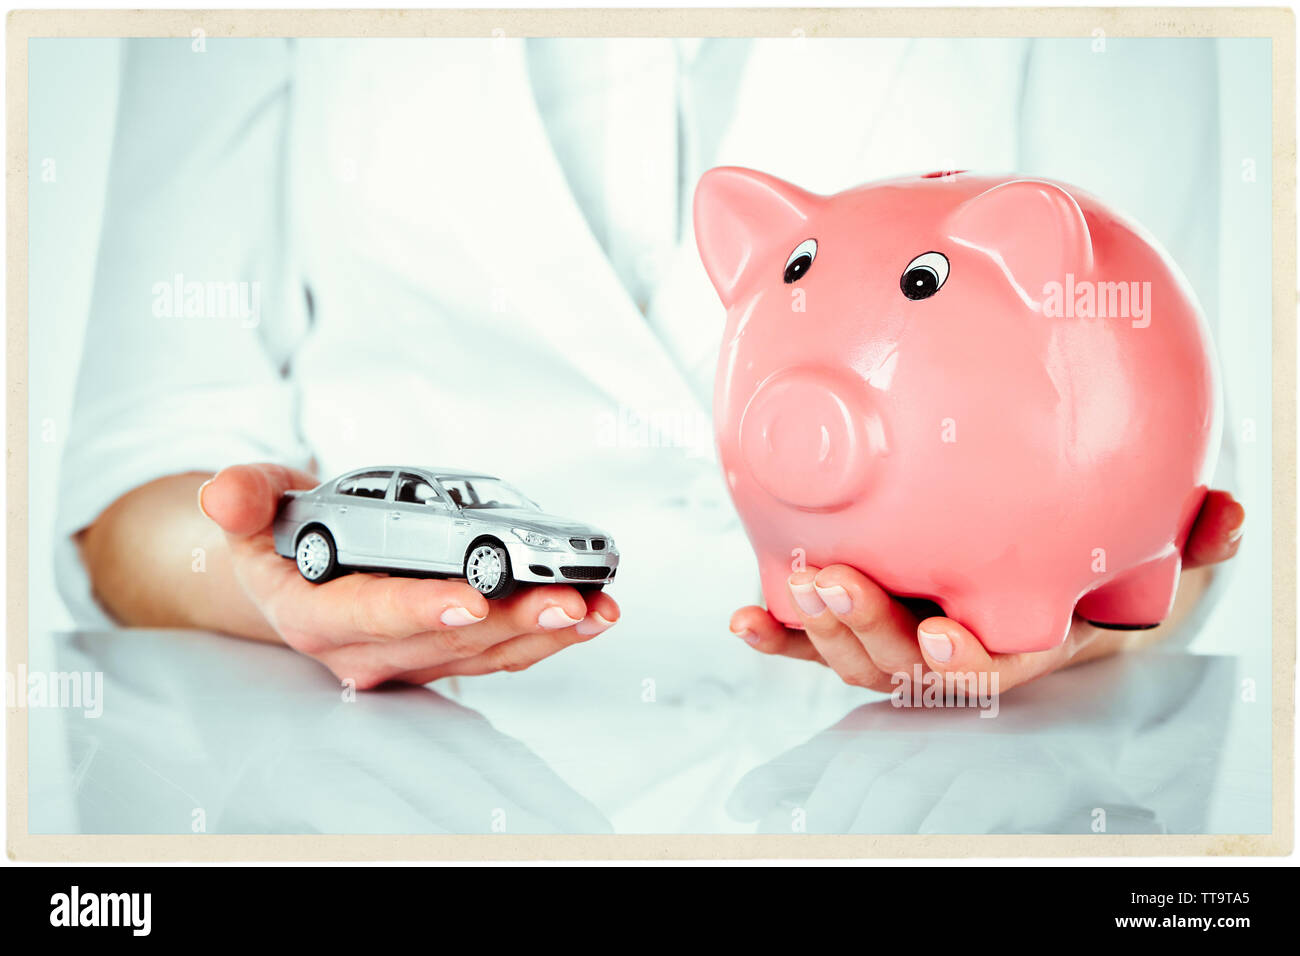 Woman holding model of car and piggy bank close up - Stock Image